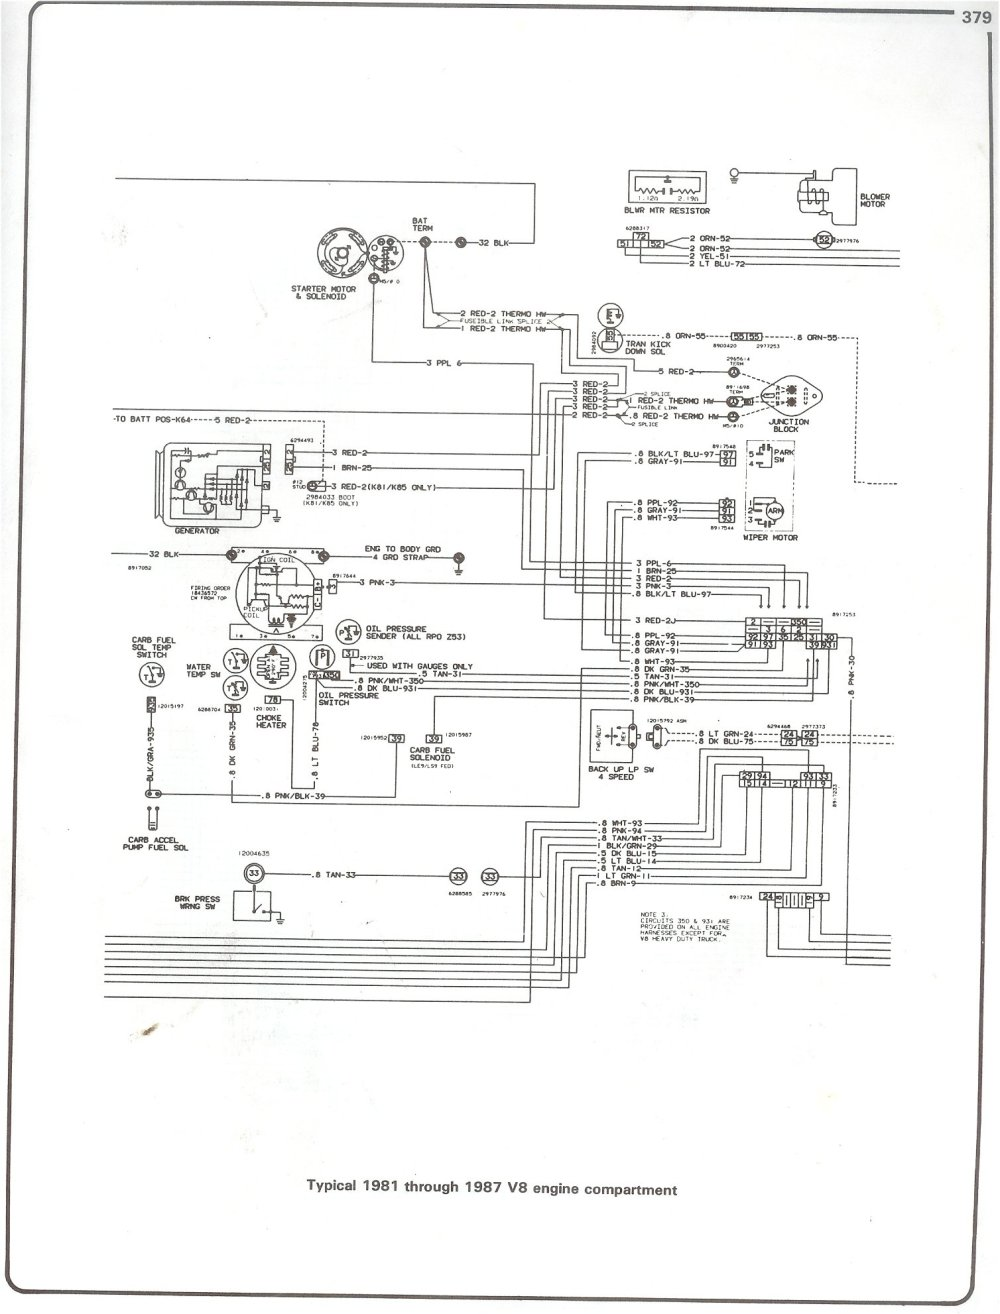 medium resolution of complete 73 87 wiring diagrams rh forum 73 87chevytrucks com 96 chevy suburban wiring diagram 1990